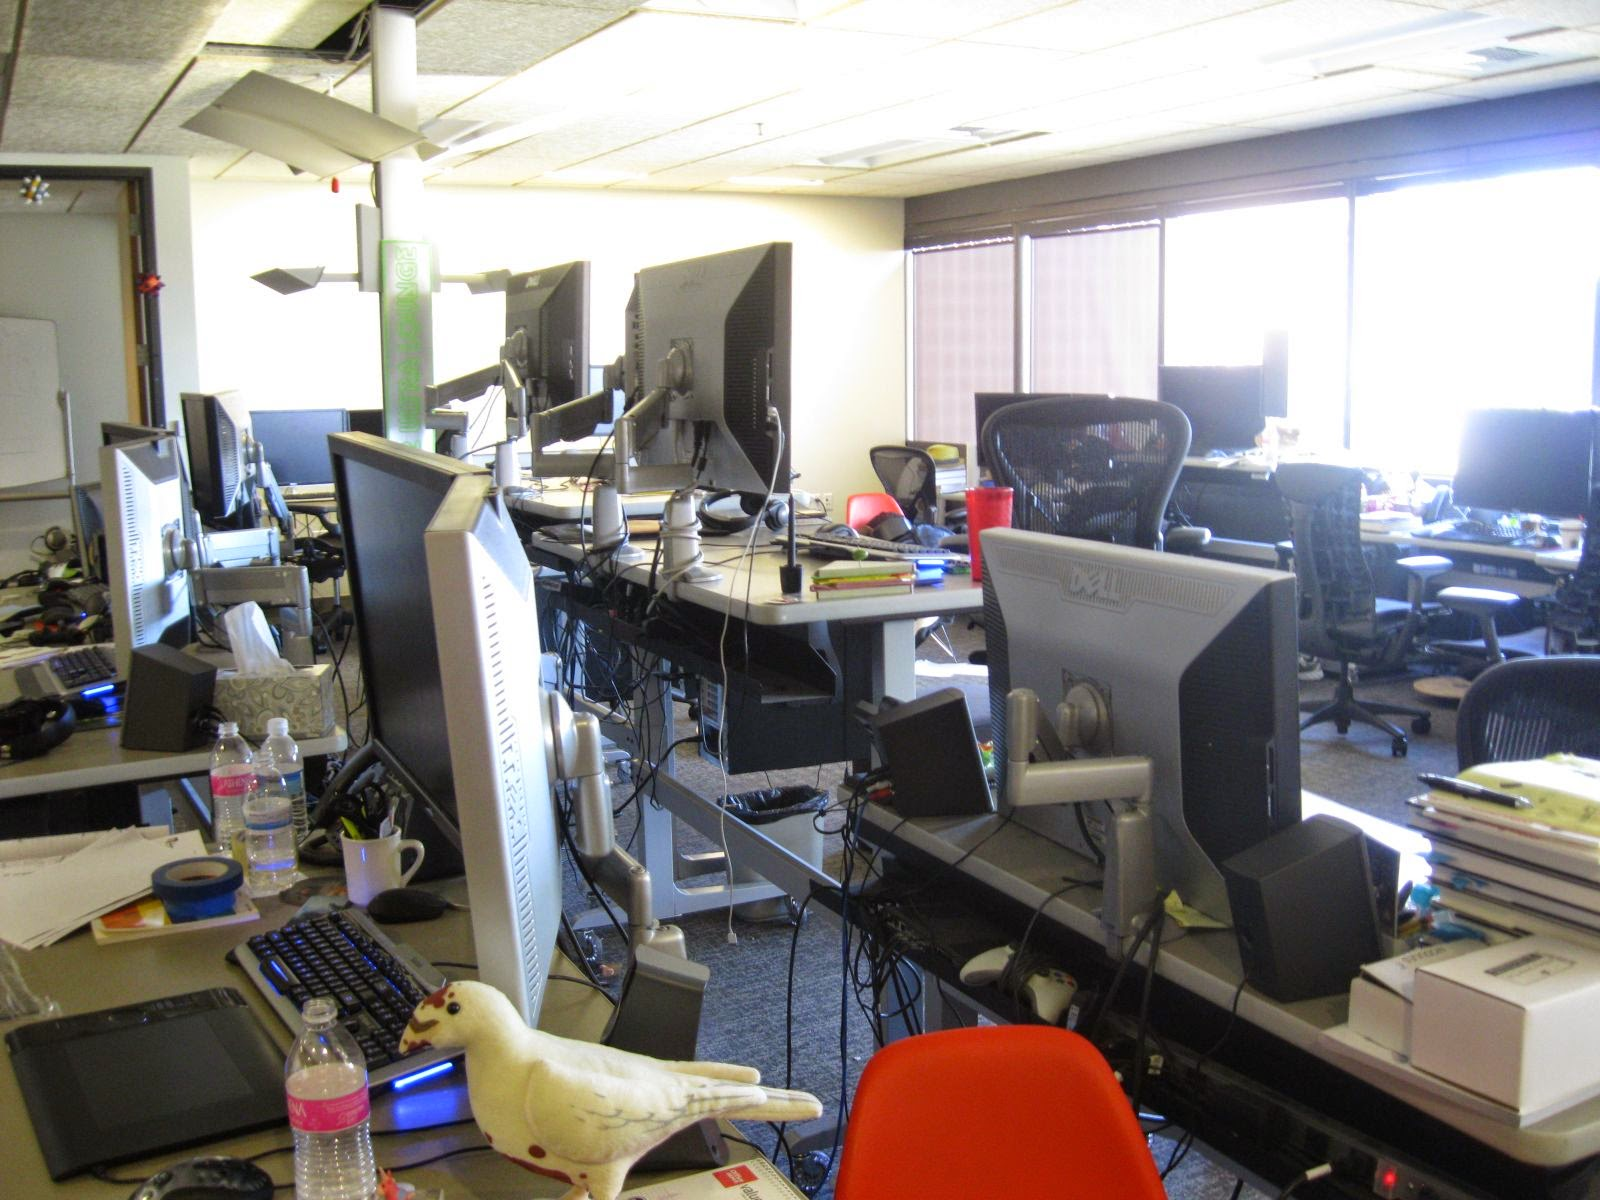 Packed In So Ly That Occasionally A Person Would Lower Or Raise Their Desks And It Get Caught Against Other Nearby One Long Time Valve